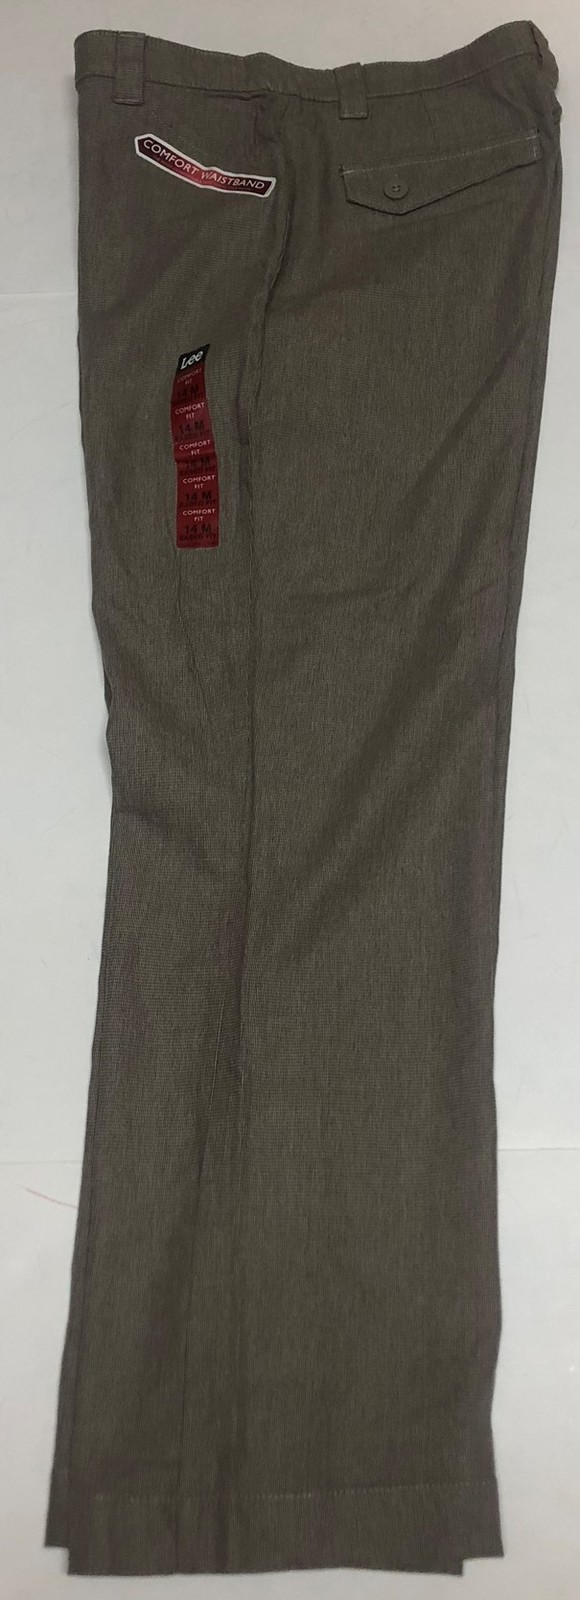 Lee Comfort Fit Casual Pants Women's Sz 14M Gray Small Plaid image 9